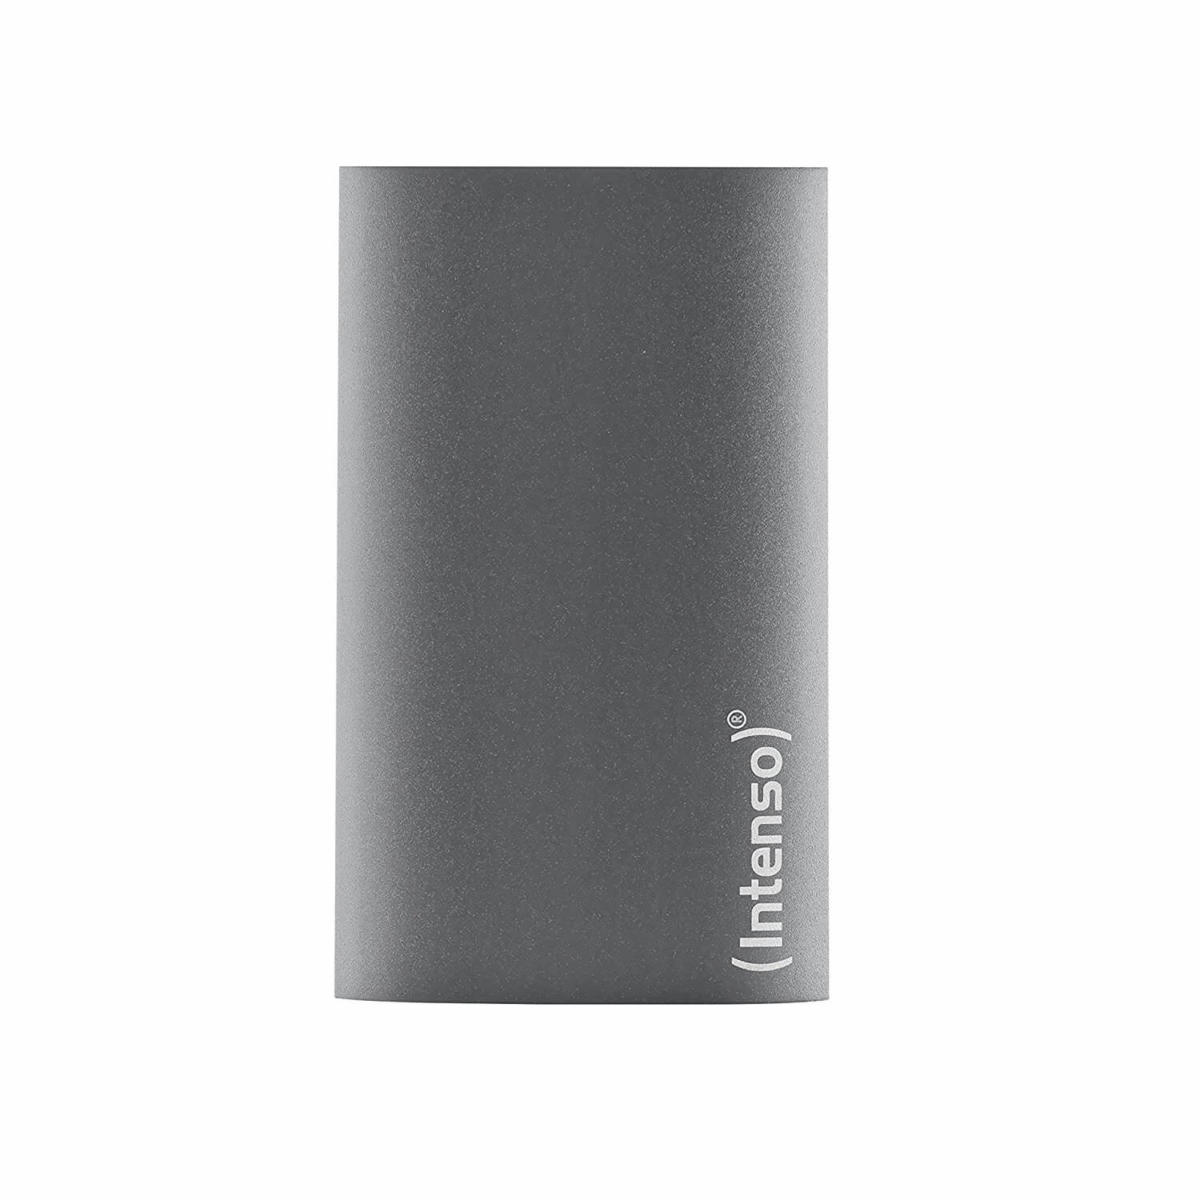 Intenso Portable SSD Premium Edition